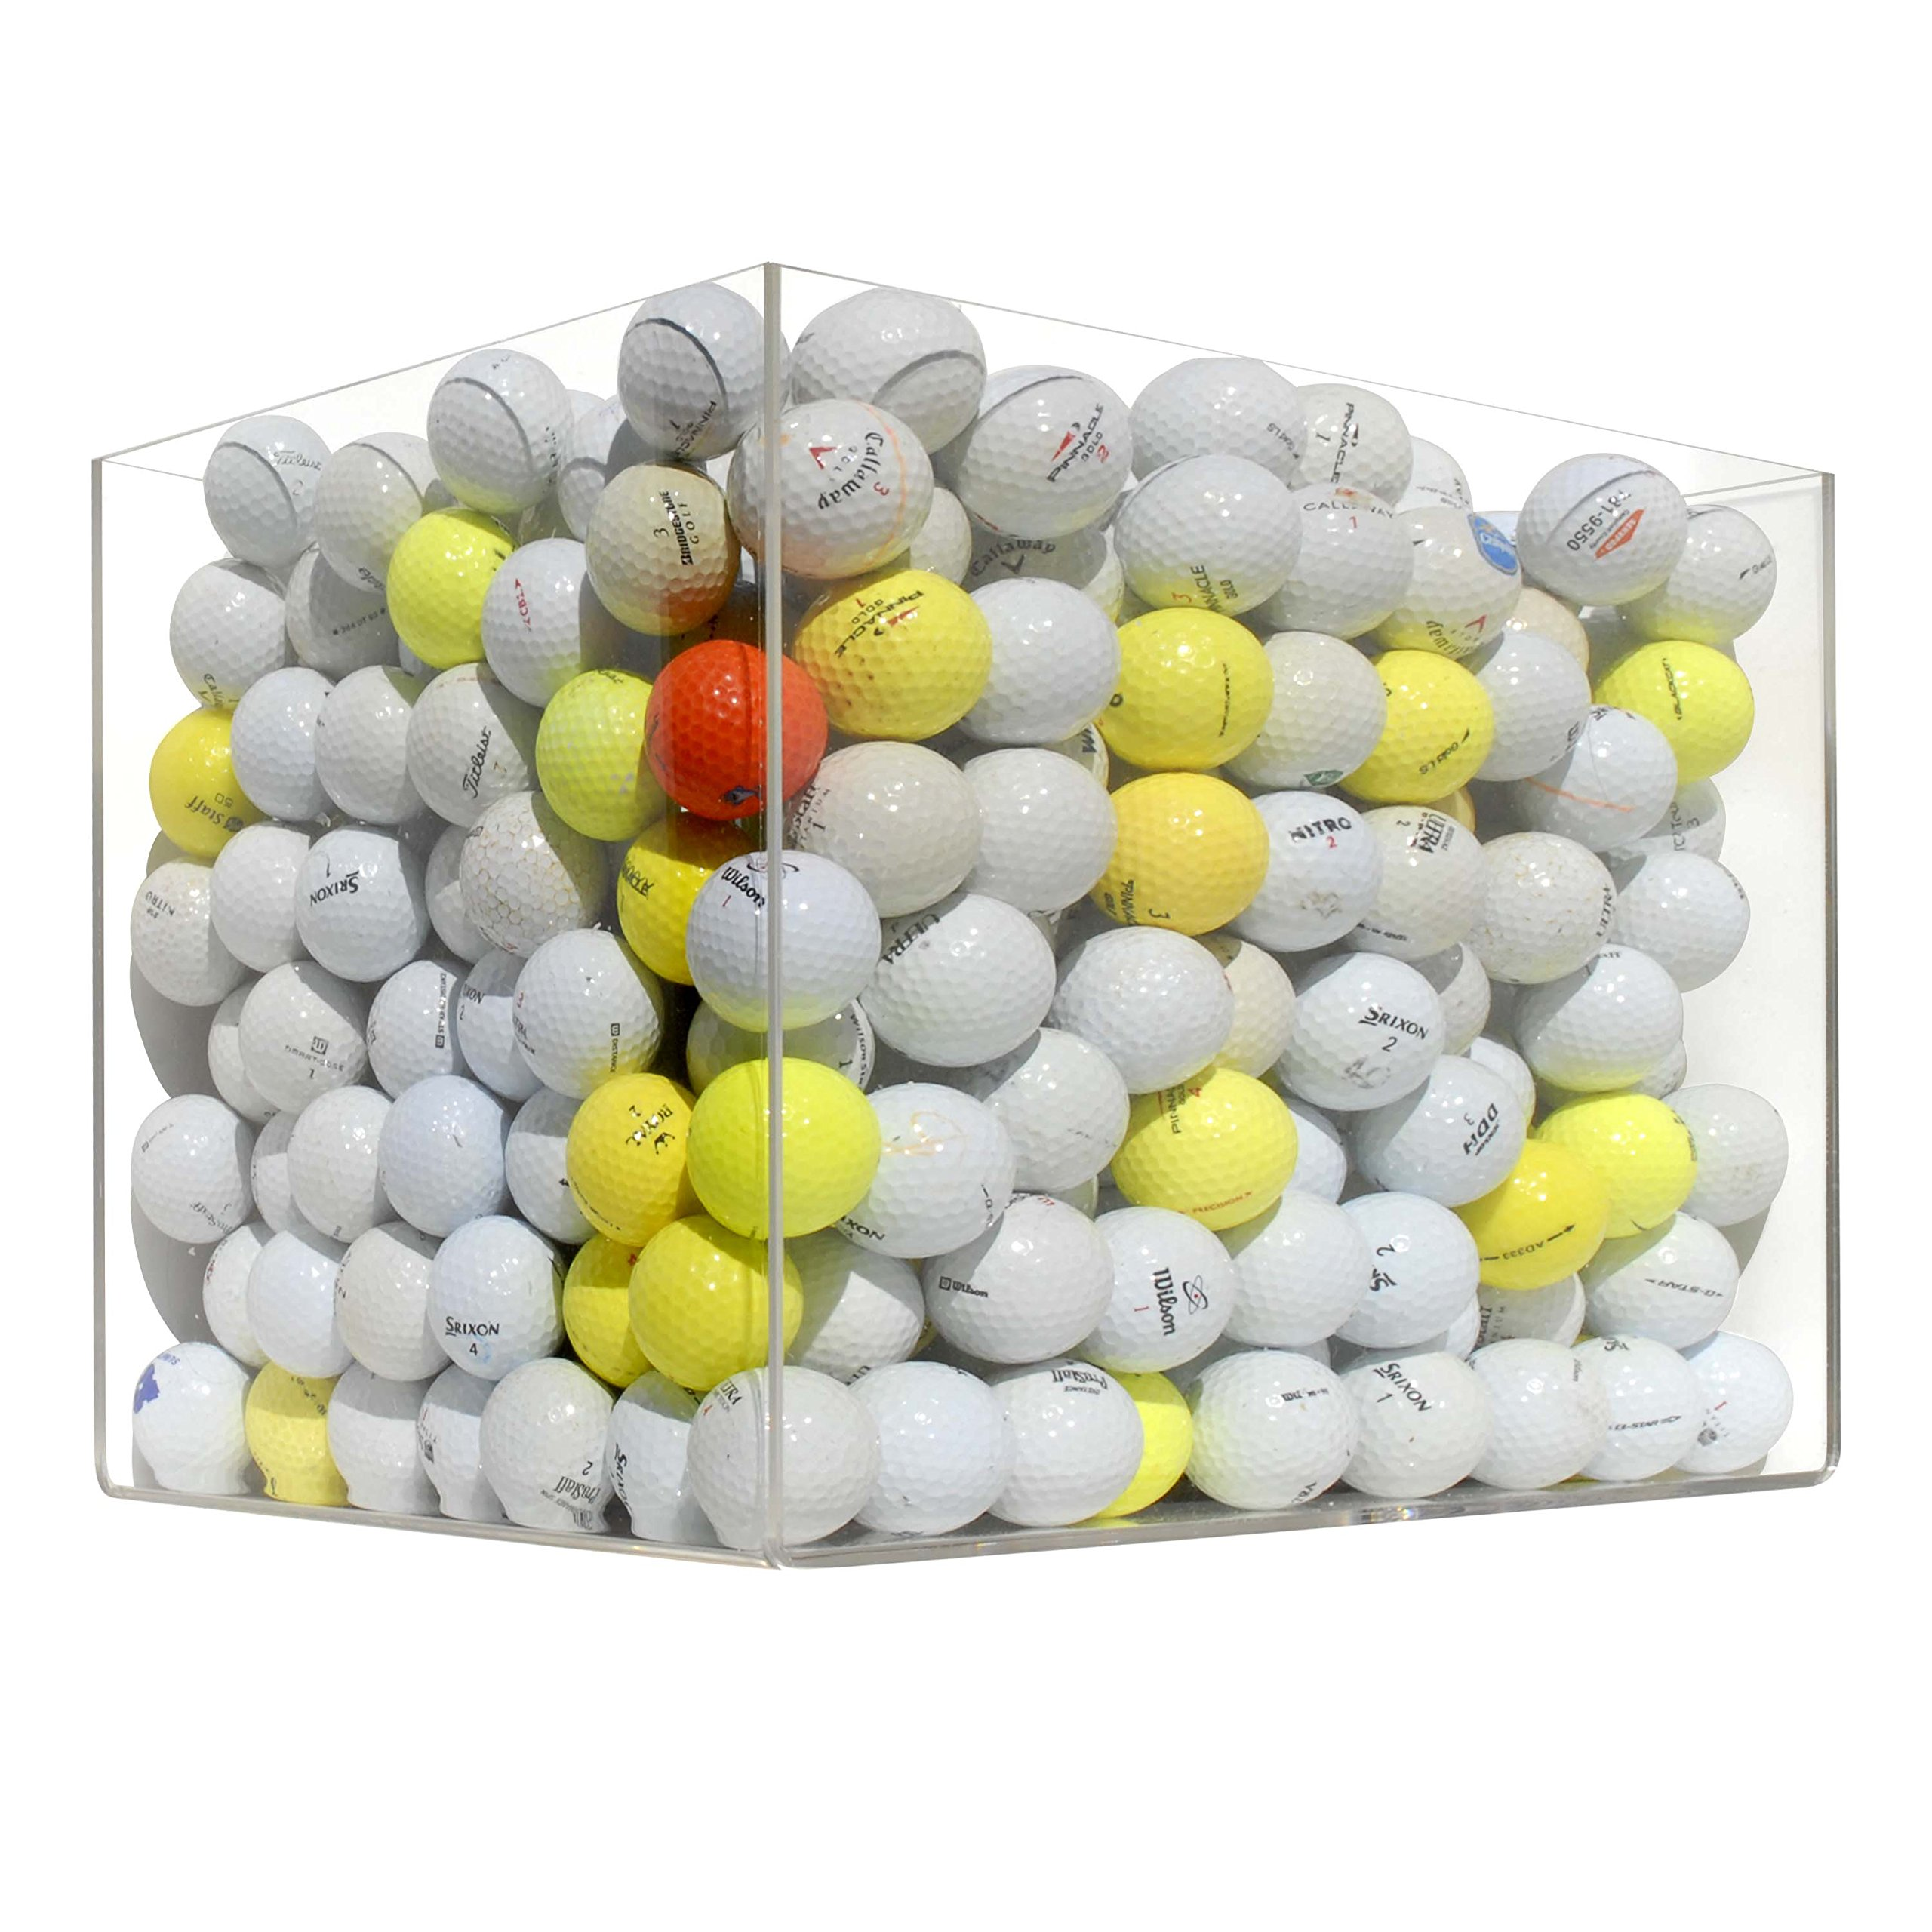 Sportime D-500 BULK Re-Load Golf Balls by Sportime (Image #1)